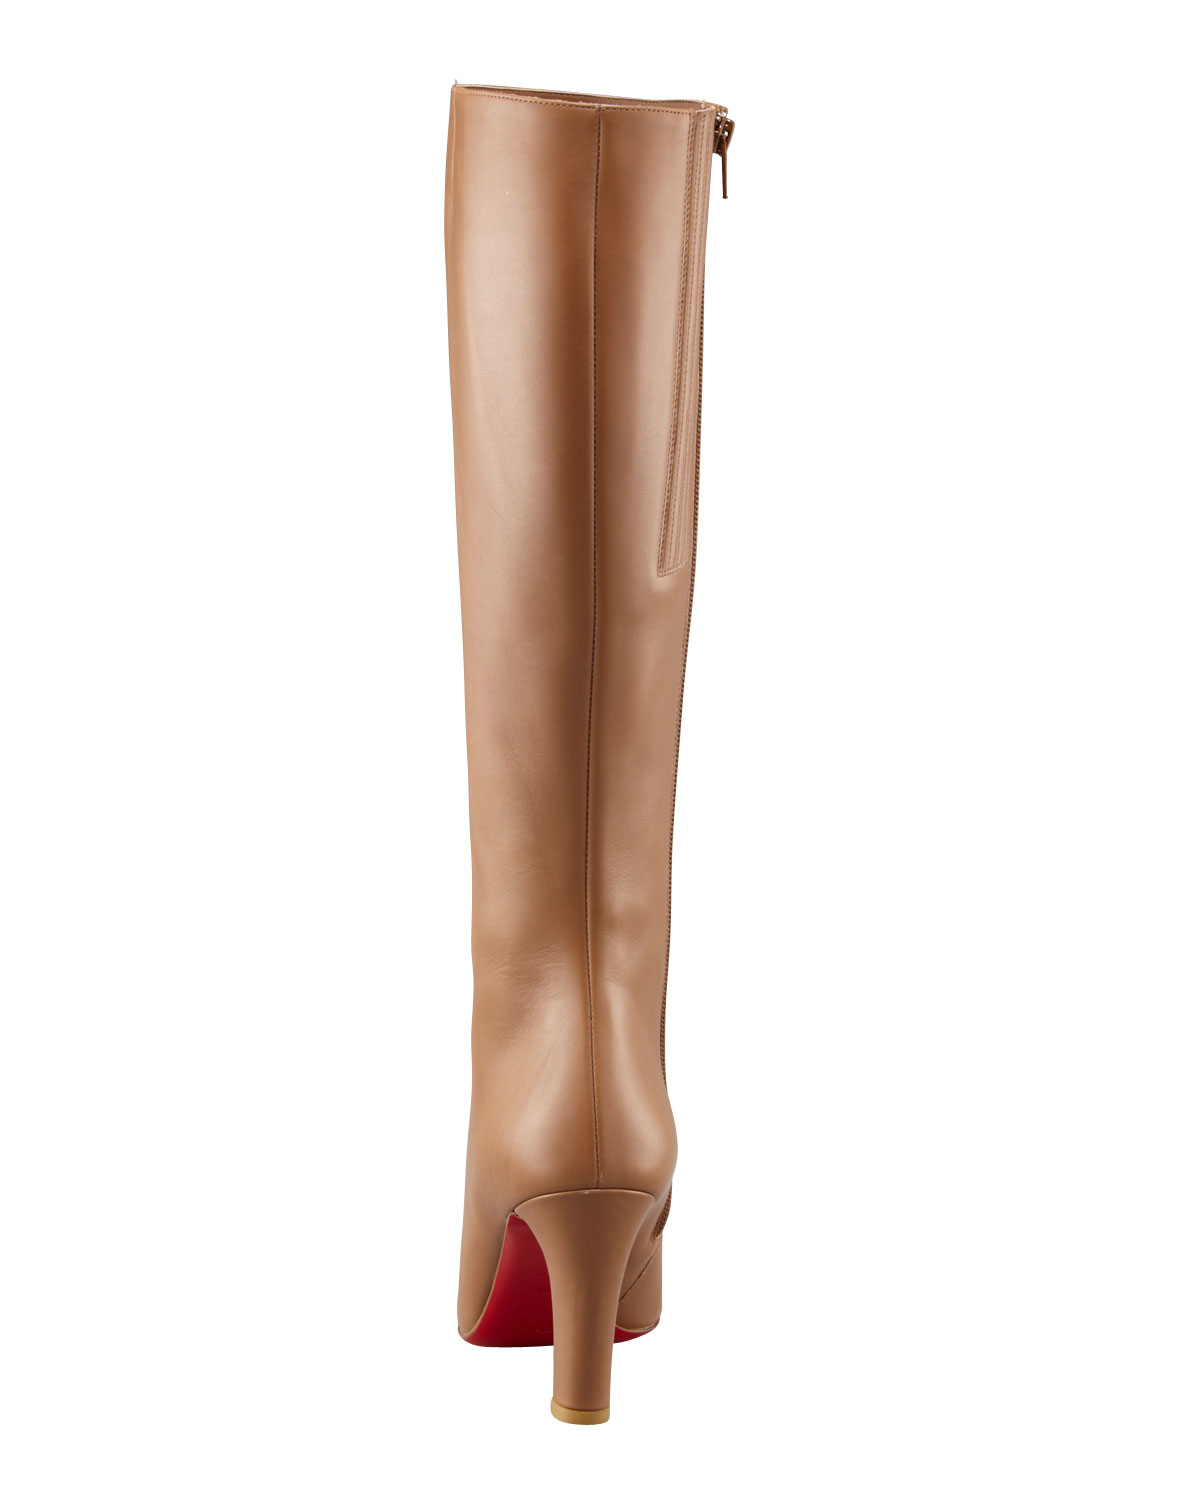 ab03de128031 Christian louboutin Miss Tack High-heel Knee Boot in Brown (camel .